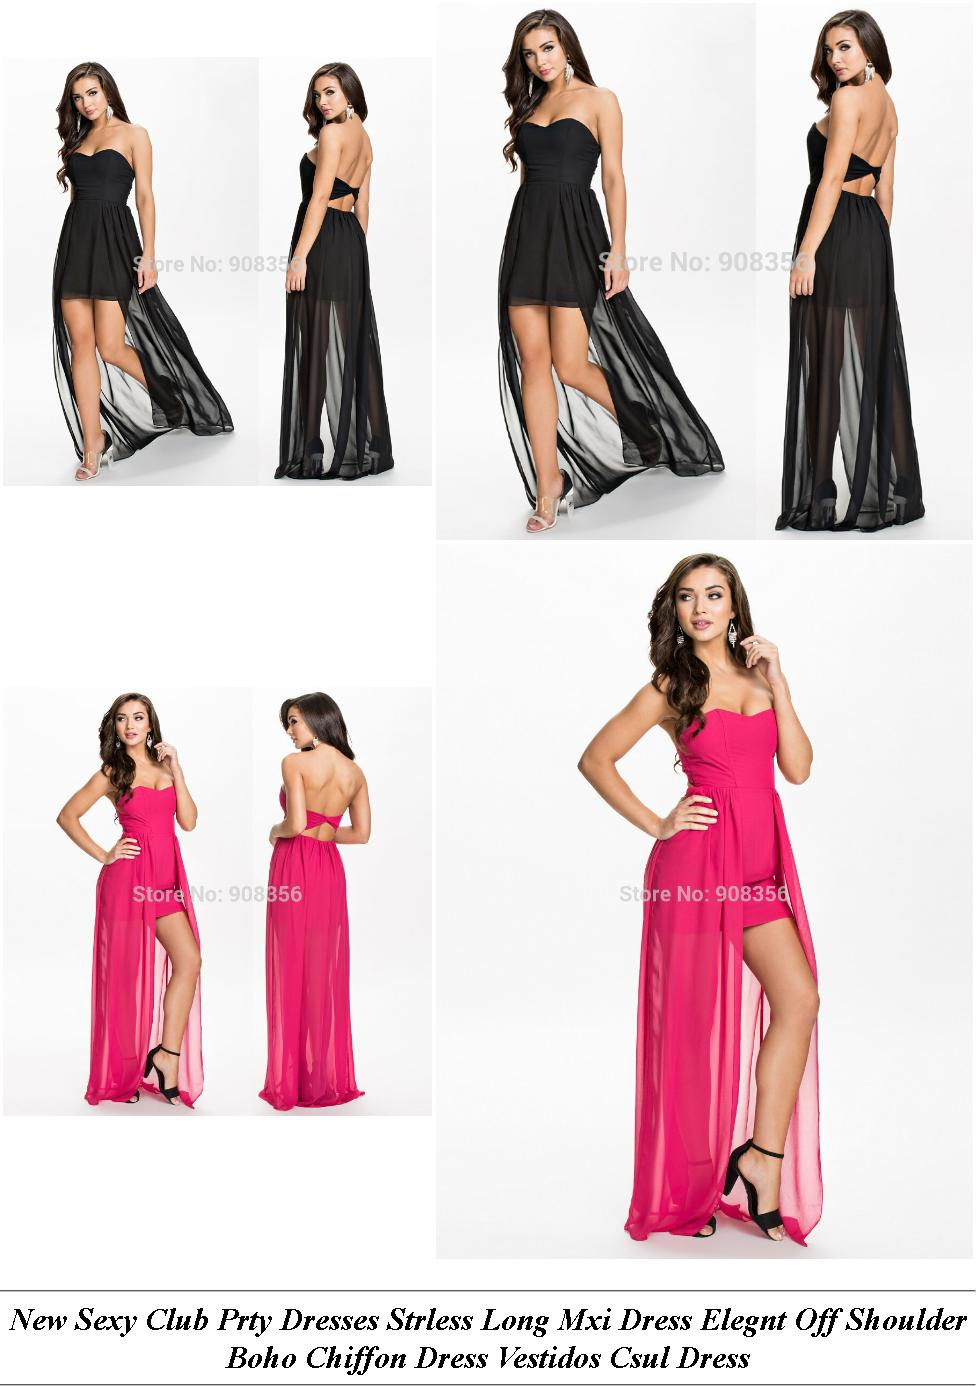 Clothing Fashion Online Store - Uy Cheap Clothes Online Australia - Female Dress Code In Duai